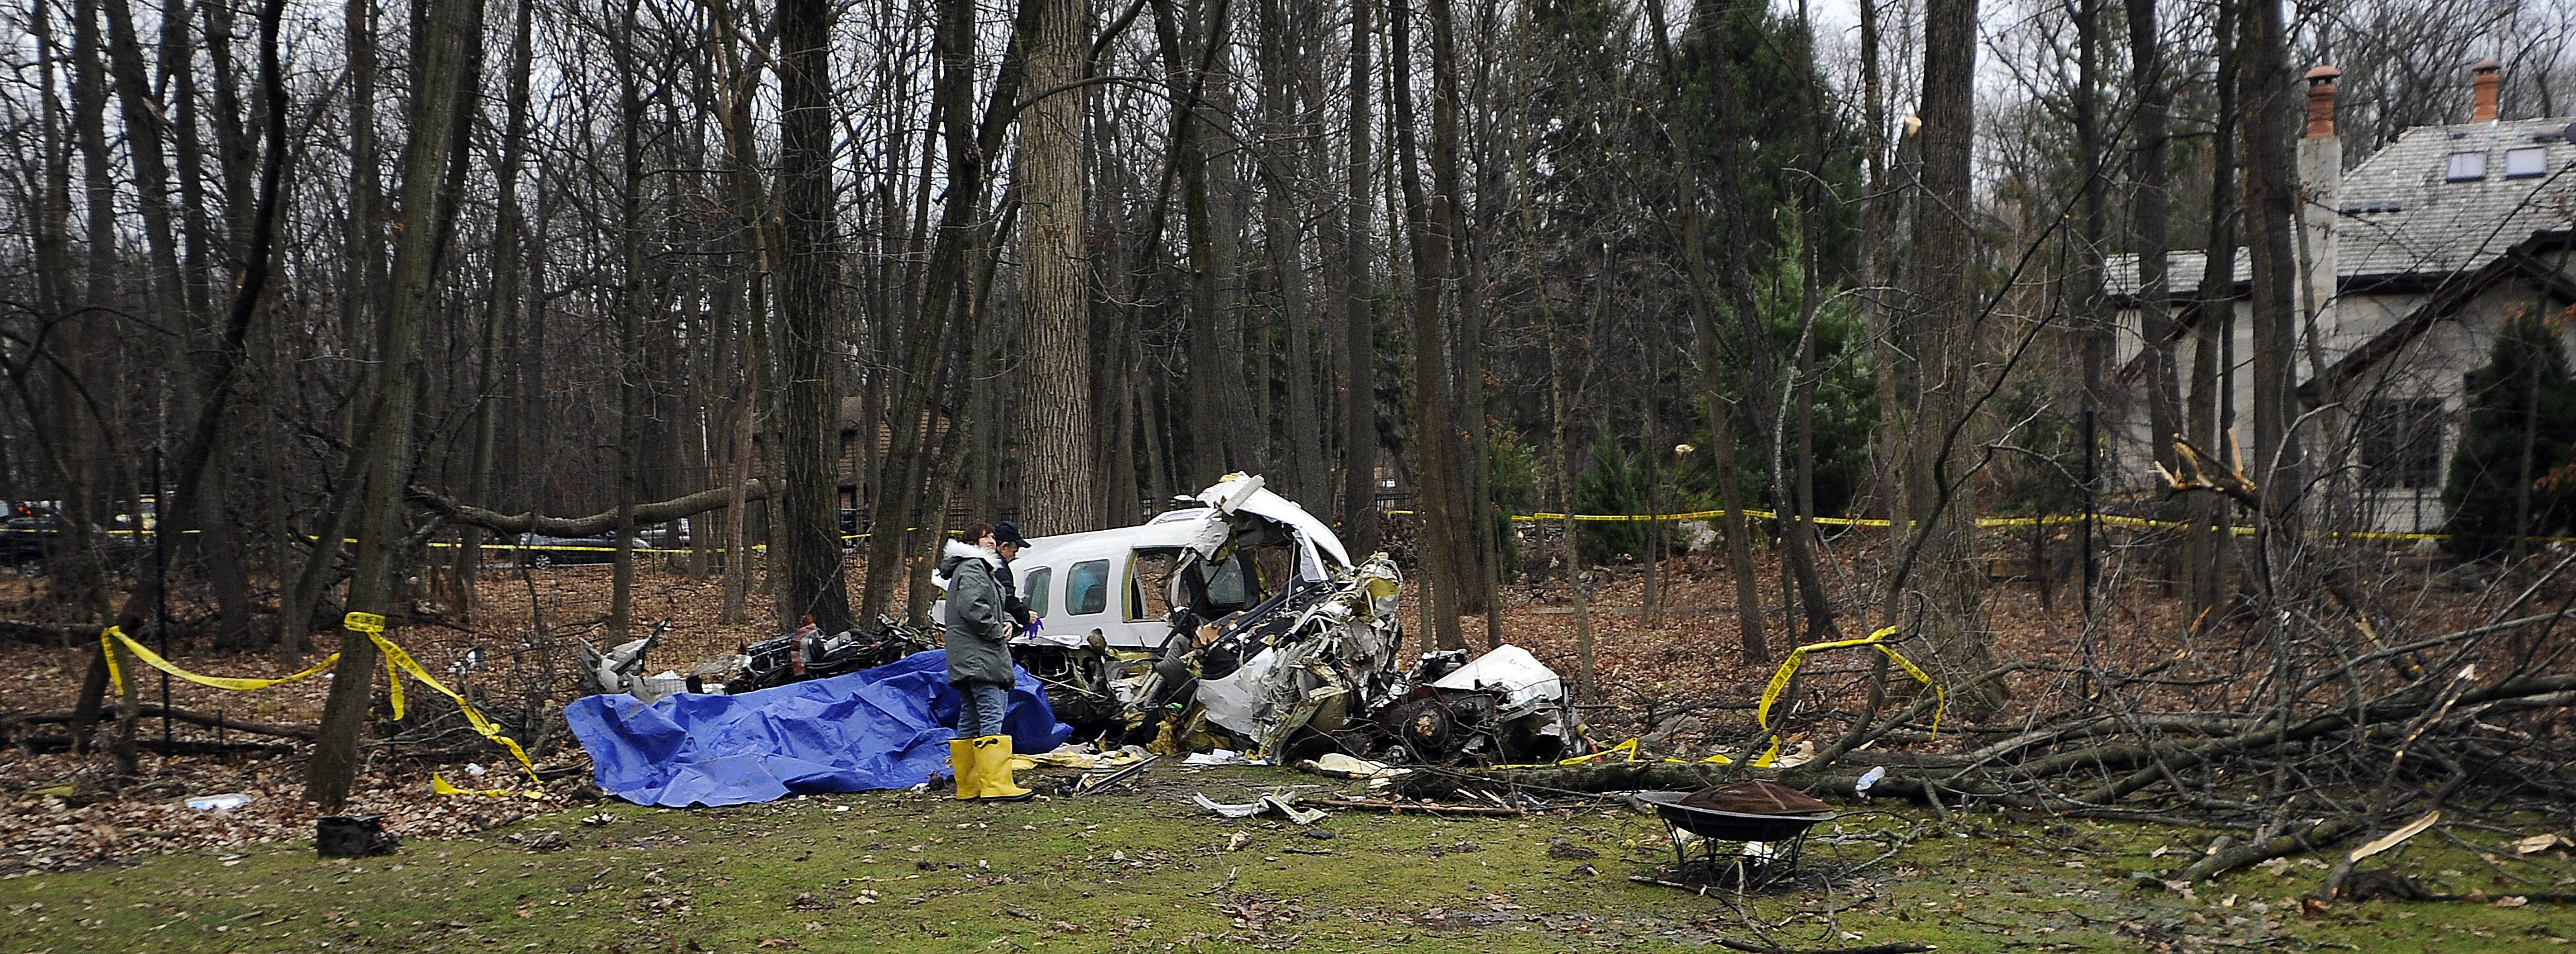 Three people were killed and two injured in a plane crash Monday night in Riverwoods.